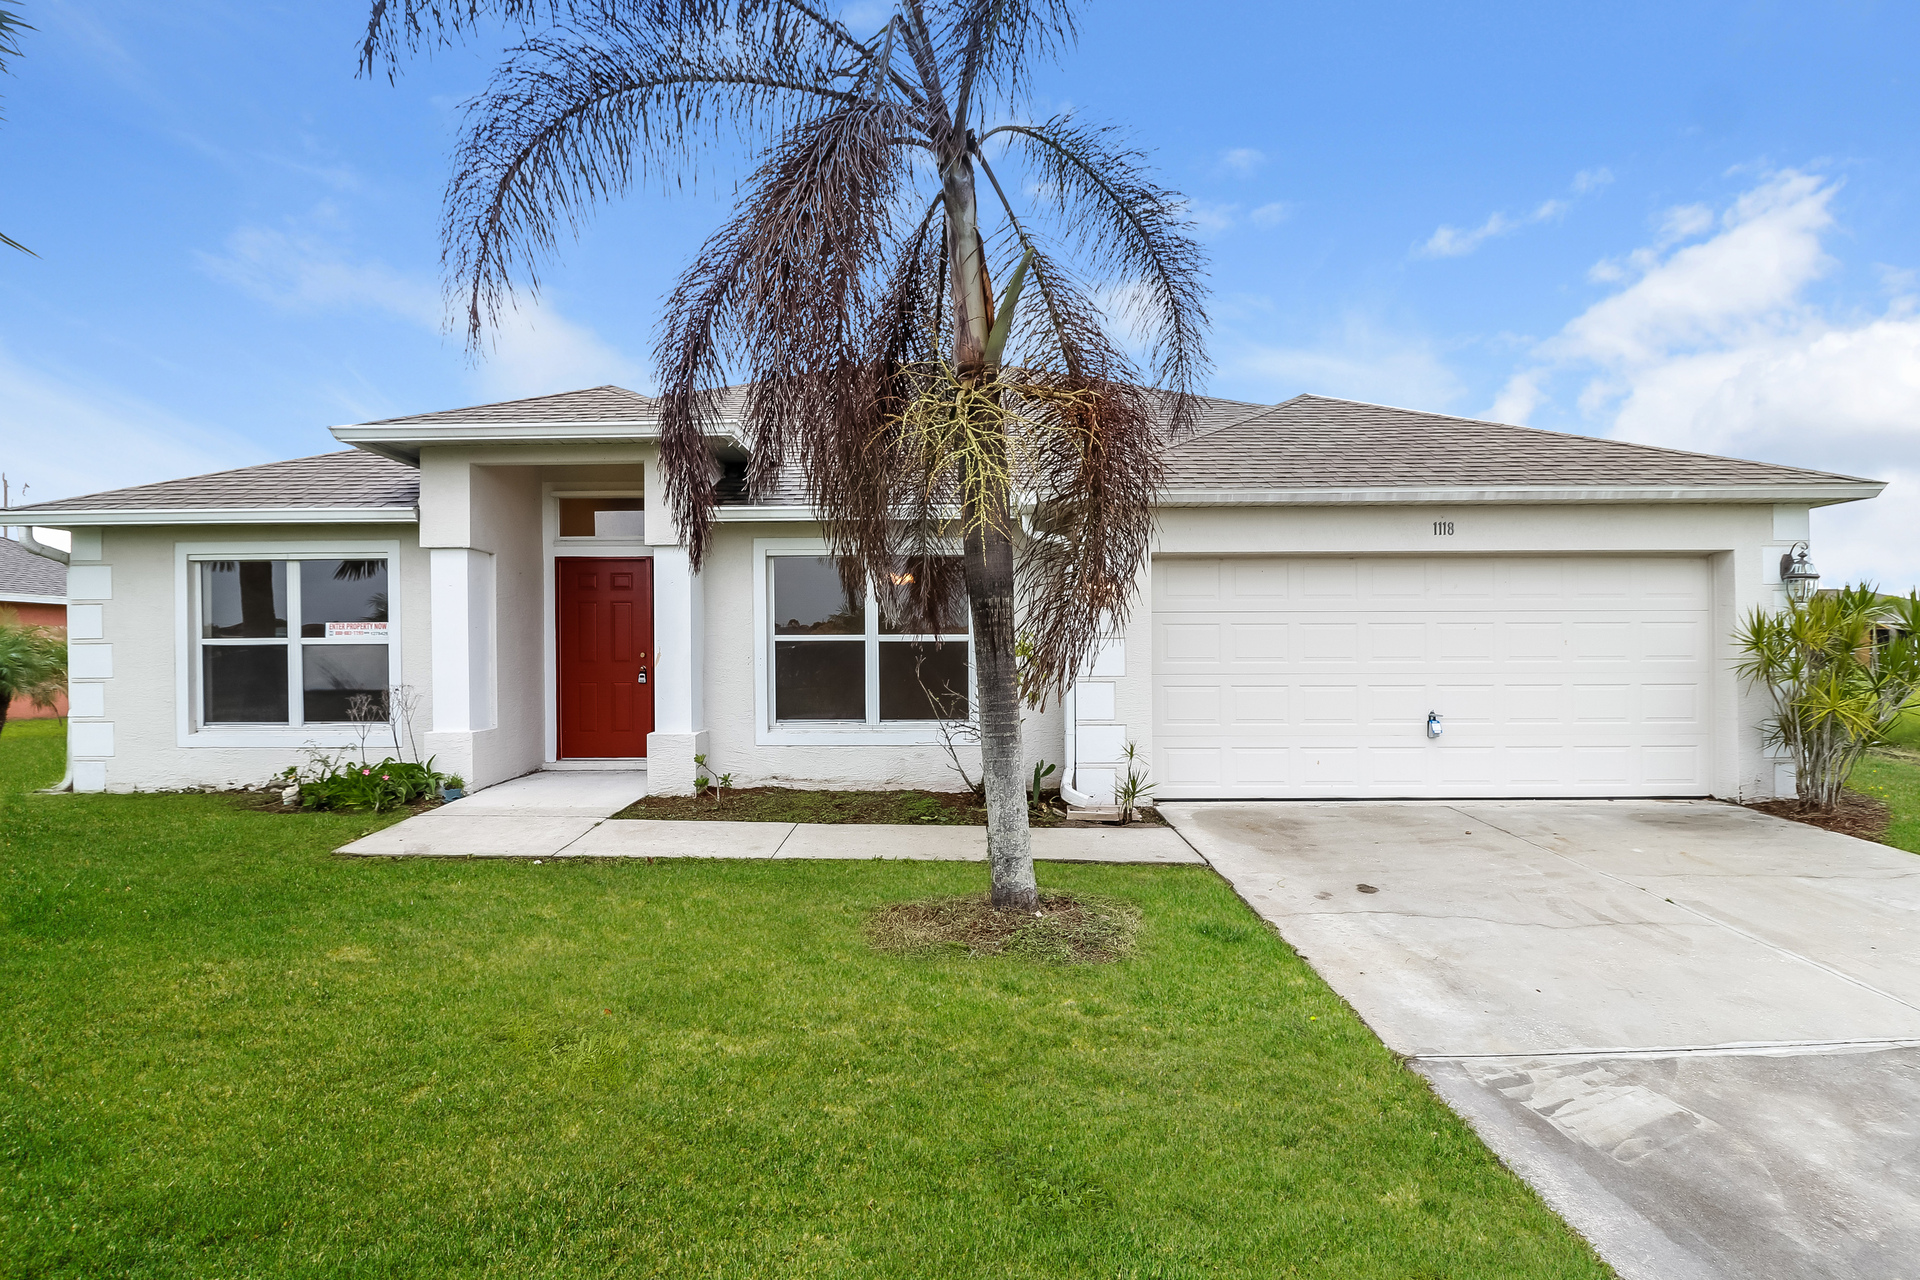 Photo of 1118 NE 3rd Avenue, Cape Coral, FL, 33909